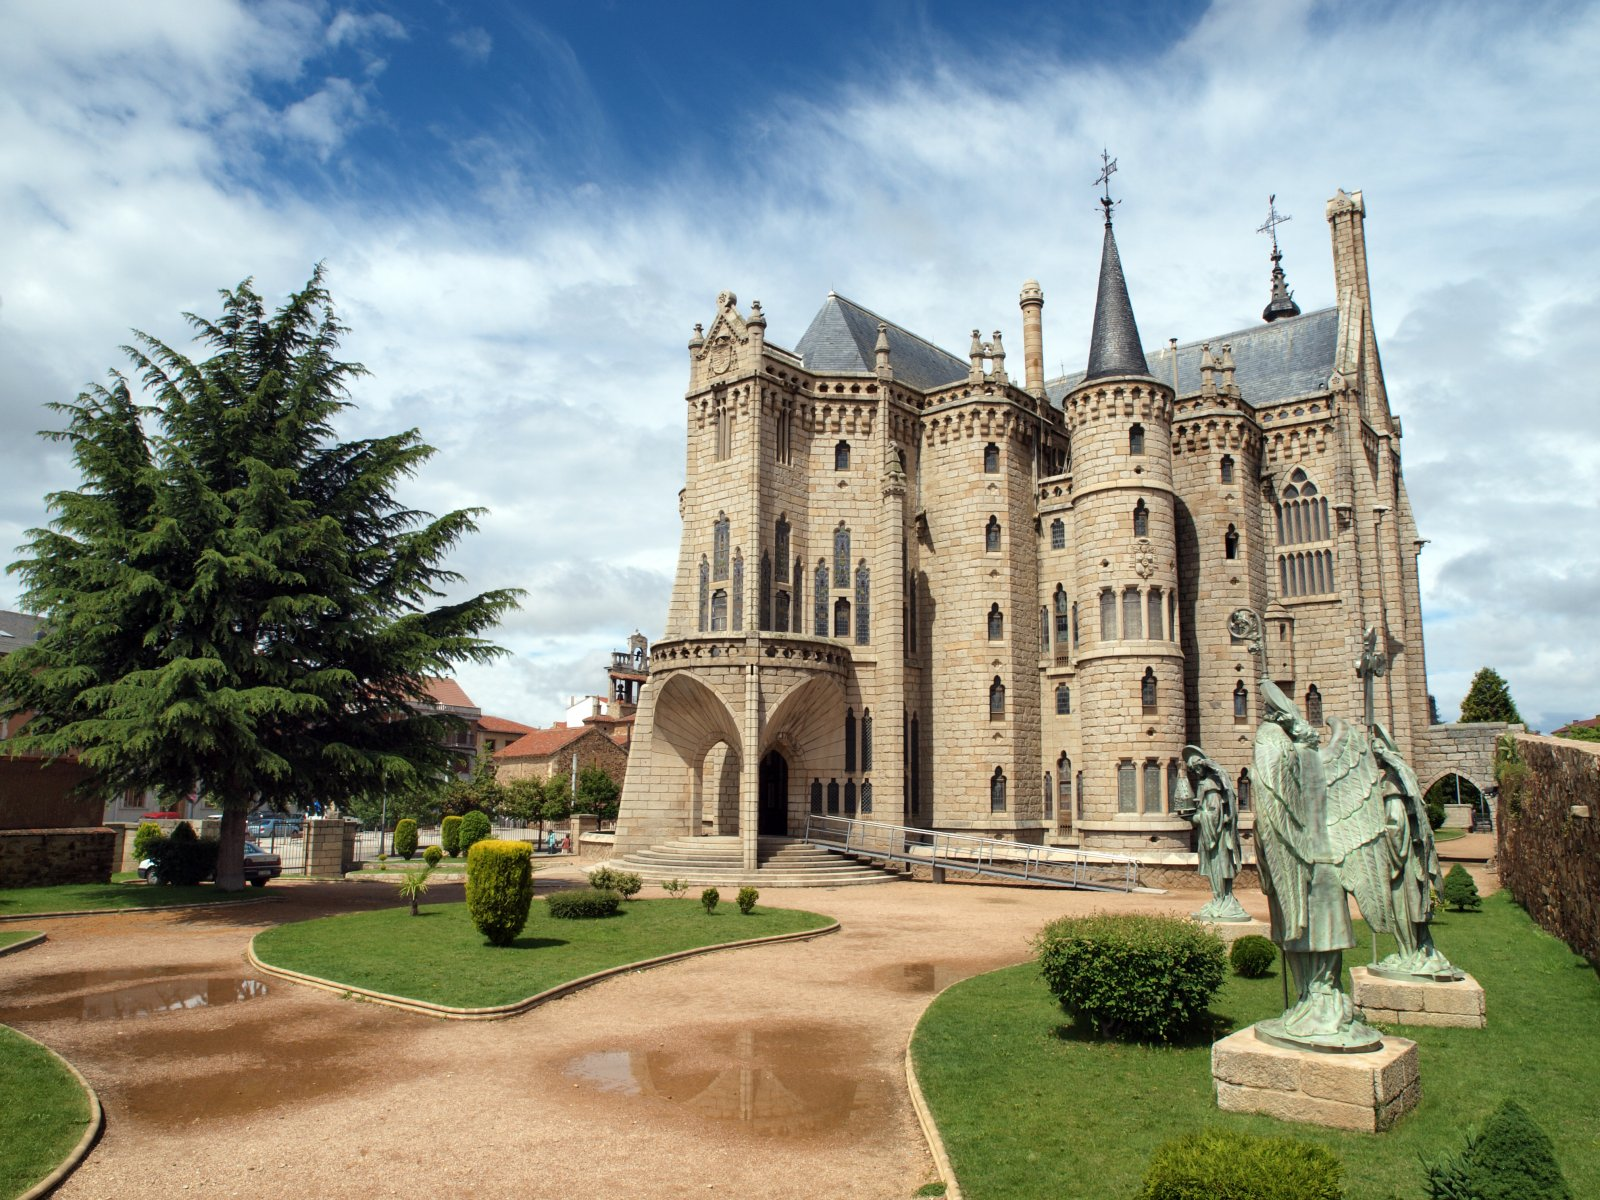 The Episcopal Palace of Astorga, Spain